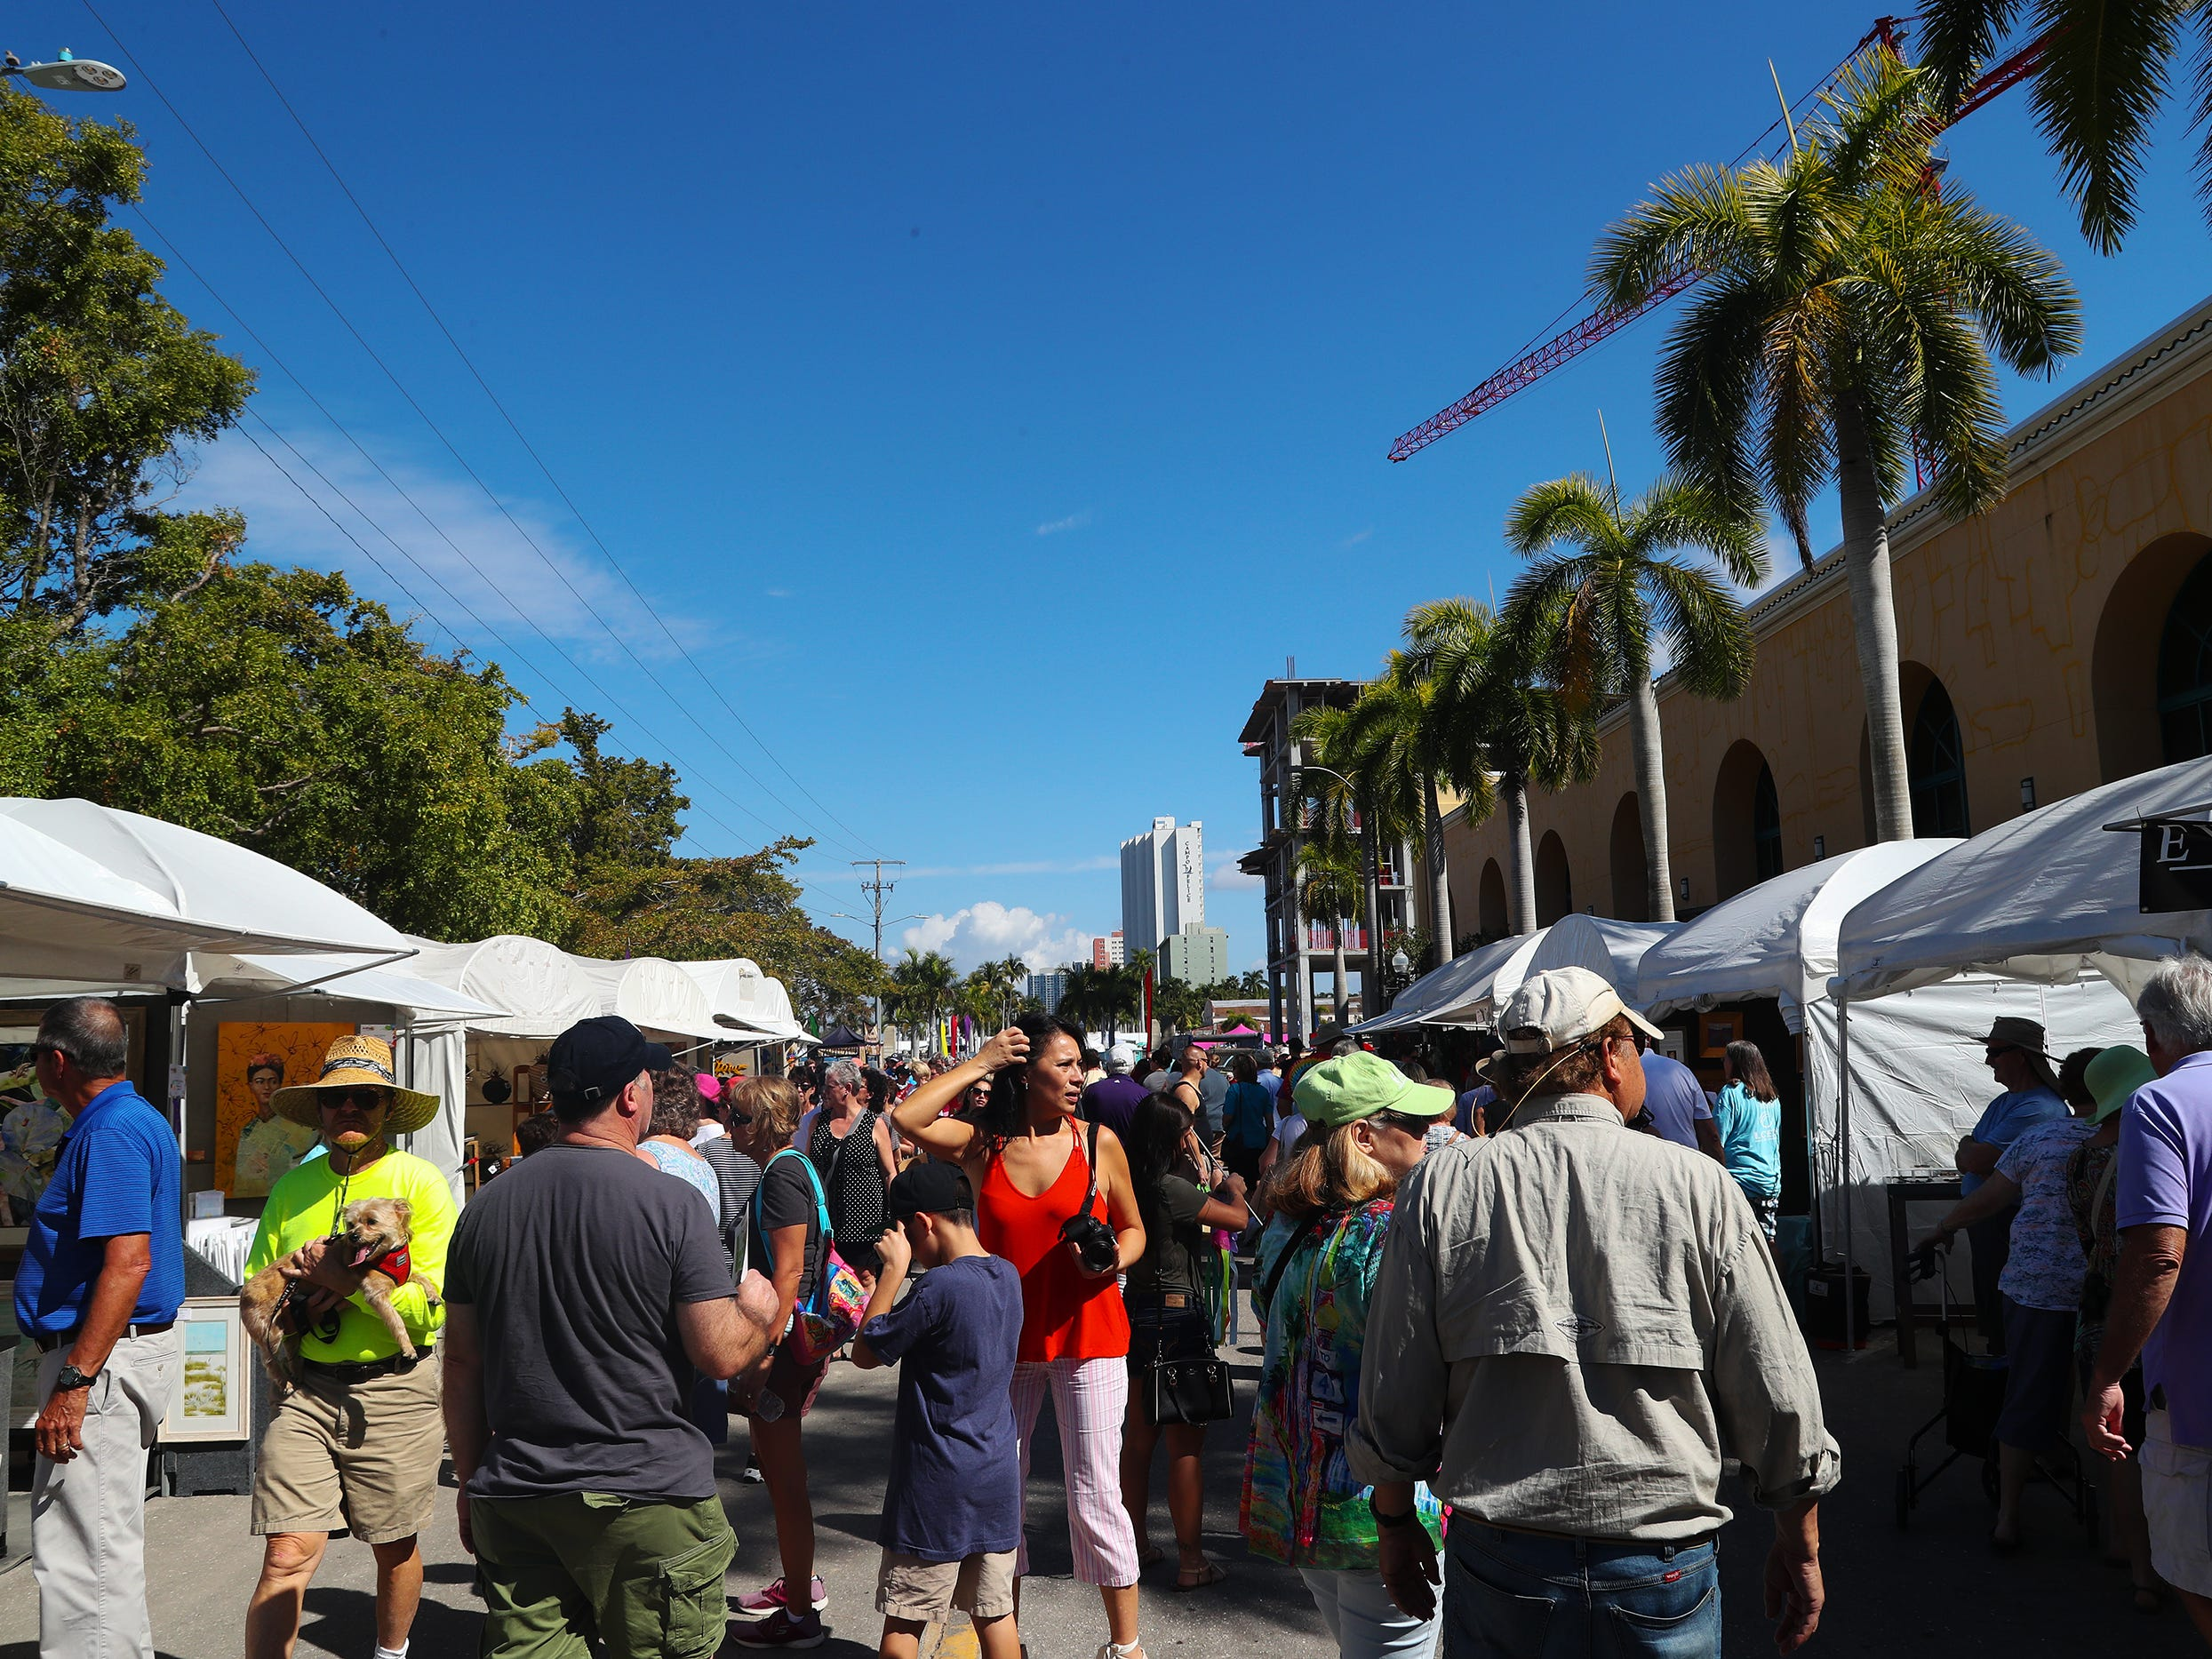 Thousands attended ArtFest Fort Myers on Sunday in downtown Fort Myers. The annual event featured works by local and national artists.